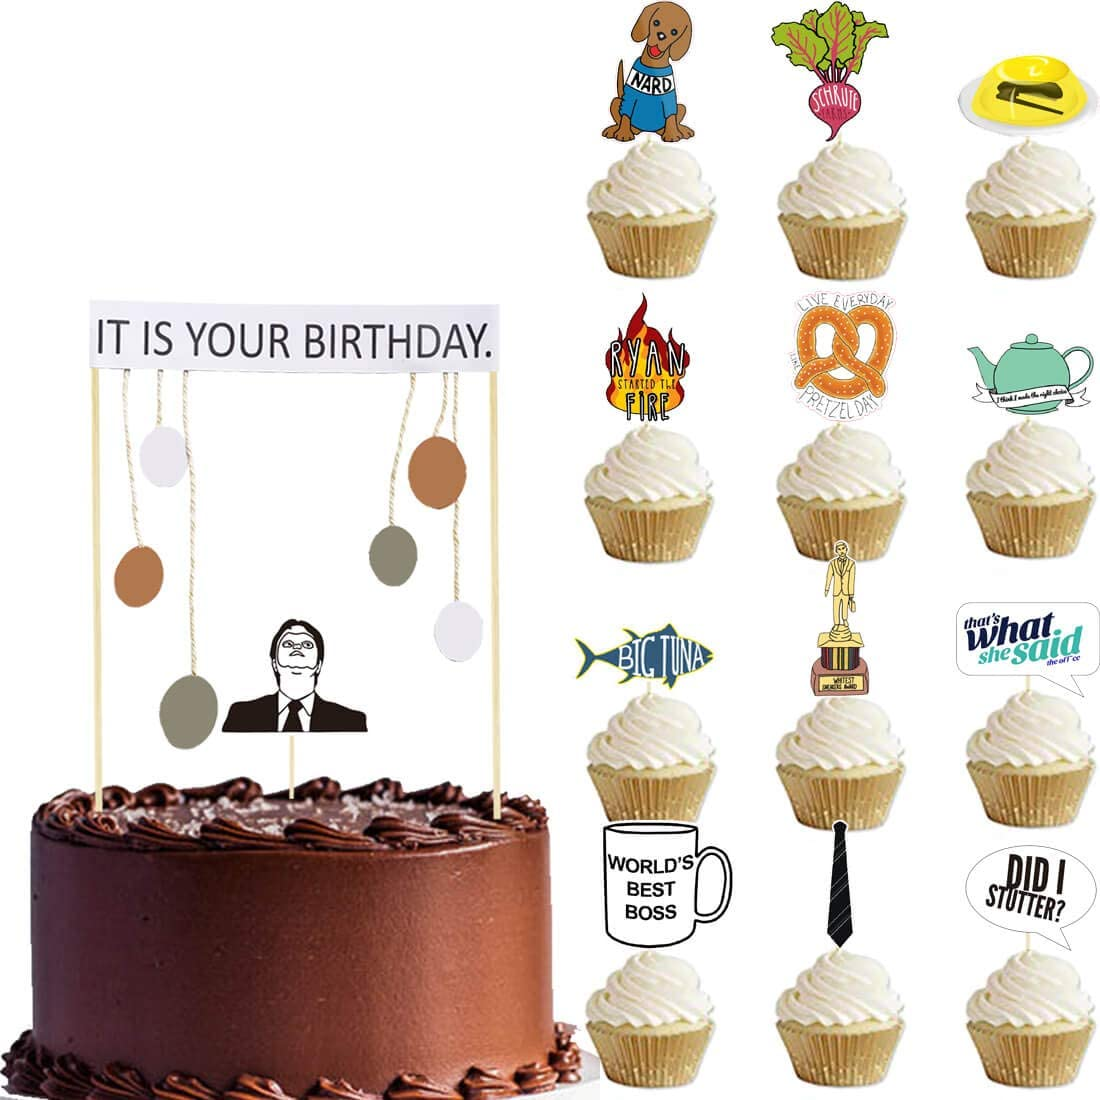 It Is Your Birthday Cake Topper and Cupcake Topper Office Theme Dwight Schrute Birthday Party Supplies Decorations